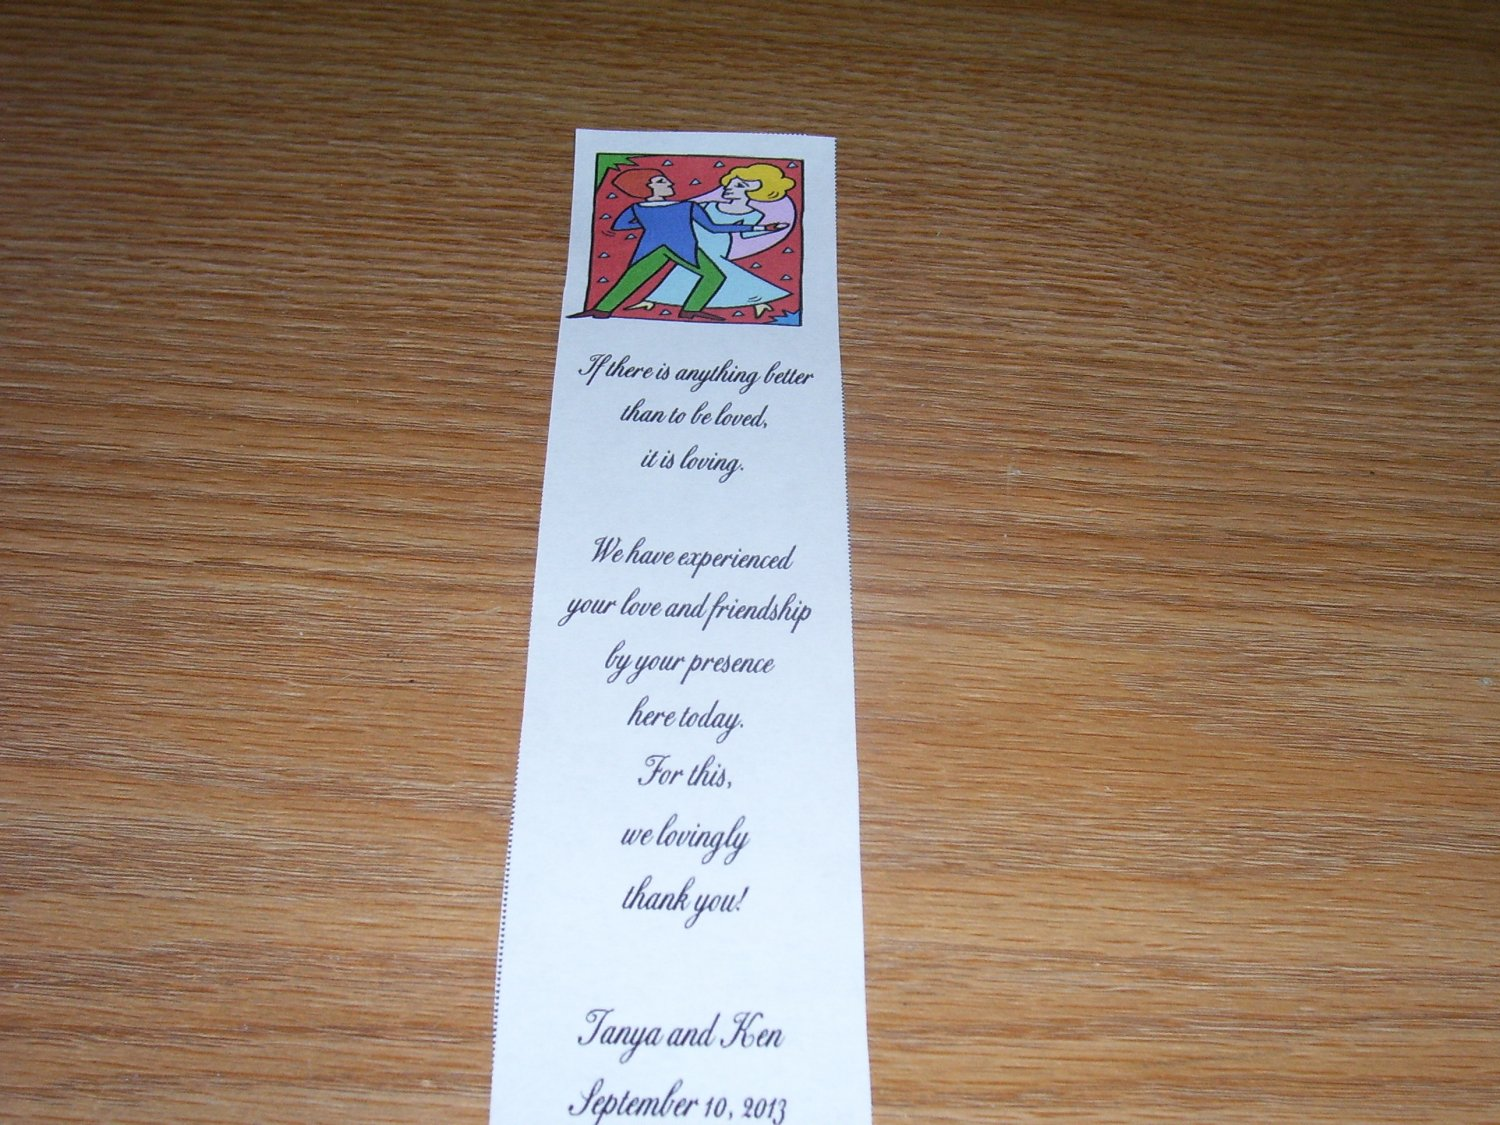 100 Personalized Laminated Wedding Favor Bookmarks     - Bride and Groom Dancing 2